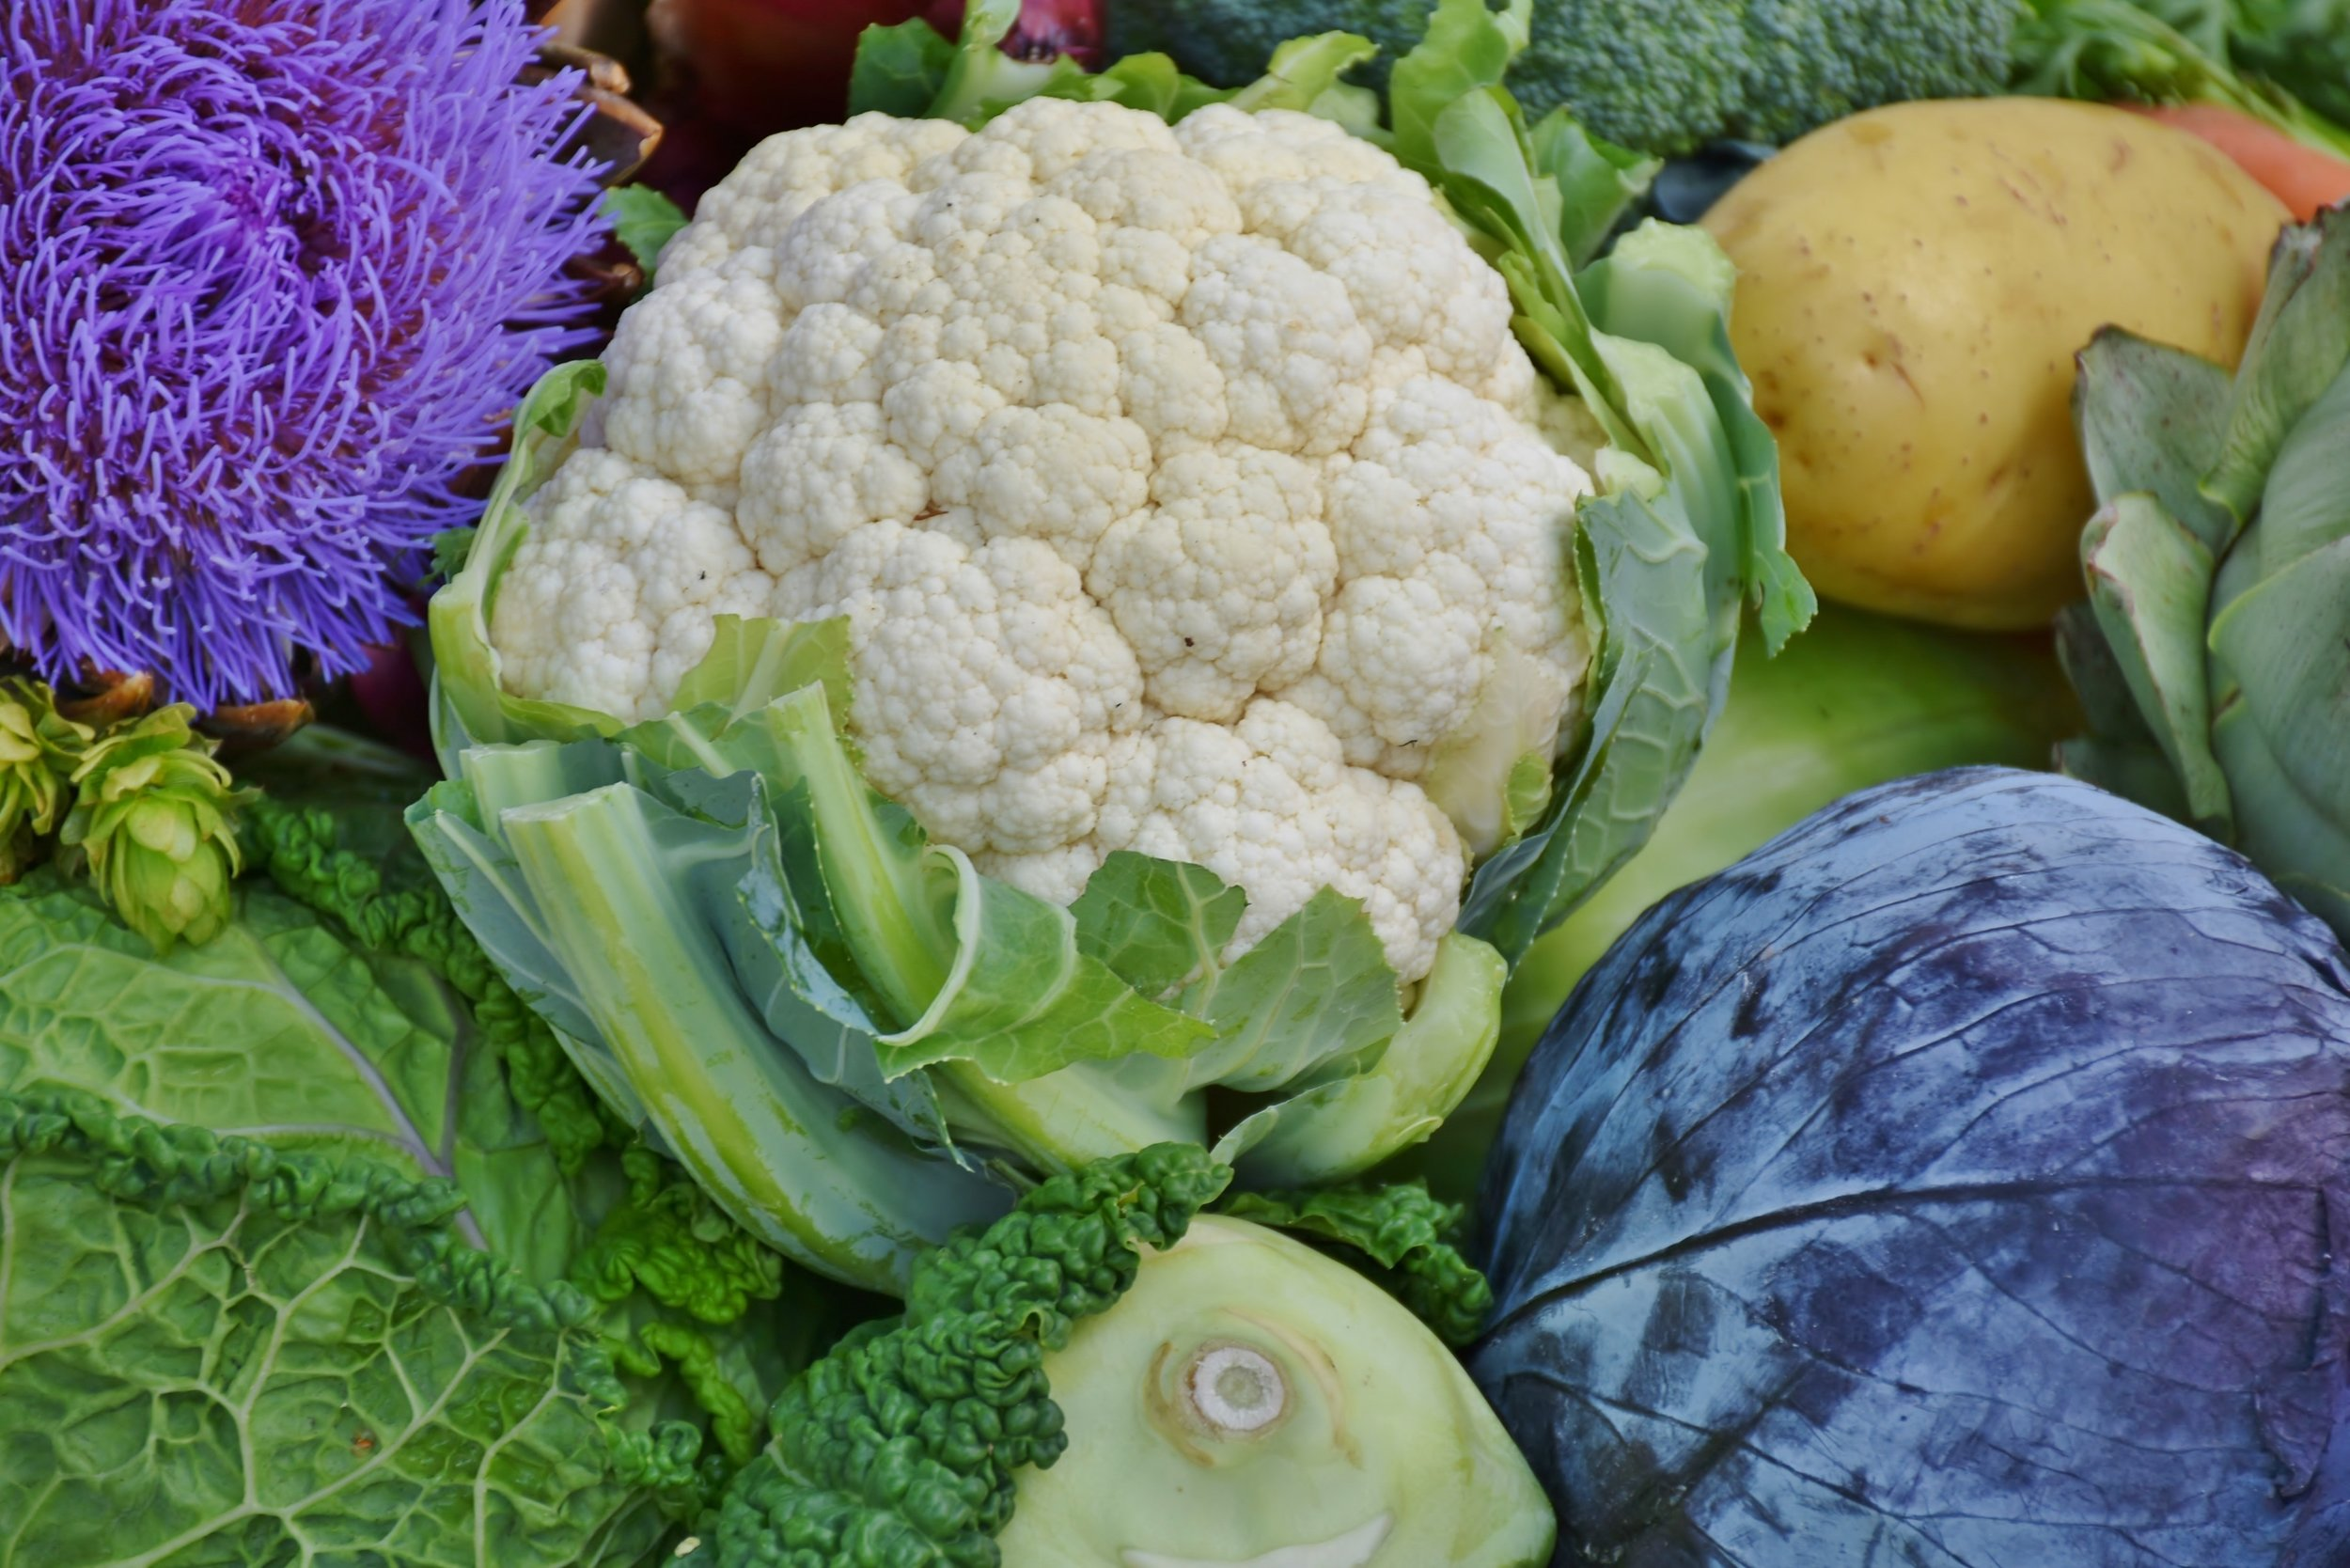 Cauliflower - is in, and it's everyone's new favourite veggie. Roast a head of cauliflower and enjoy it with tahini dip, or hummus, or cheese… as you graze on the array of combinations you'll feel like you're privy to a rare culinary delight. The secret? It couldn't be easier to prepare.